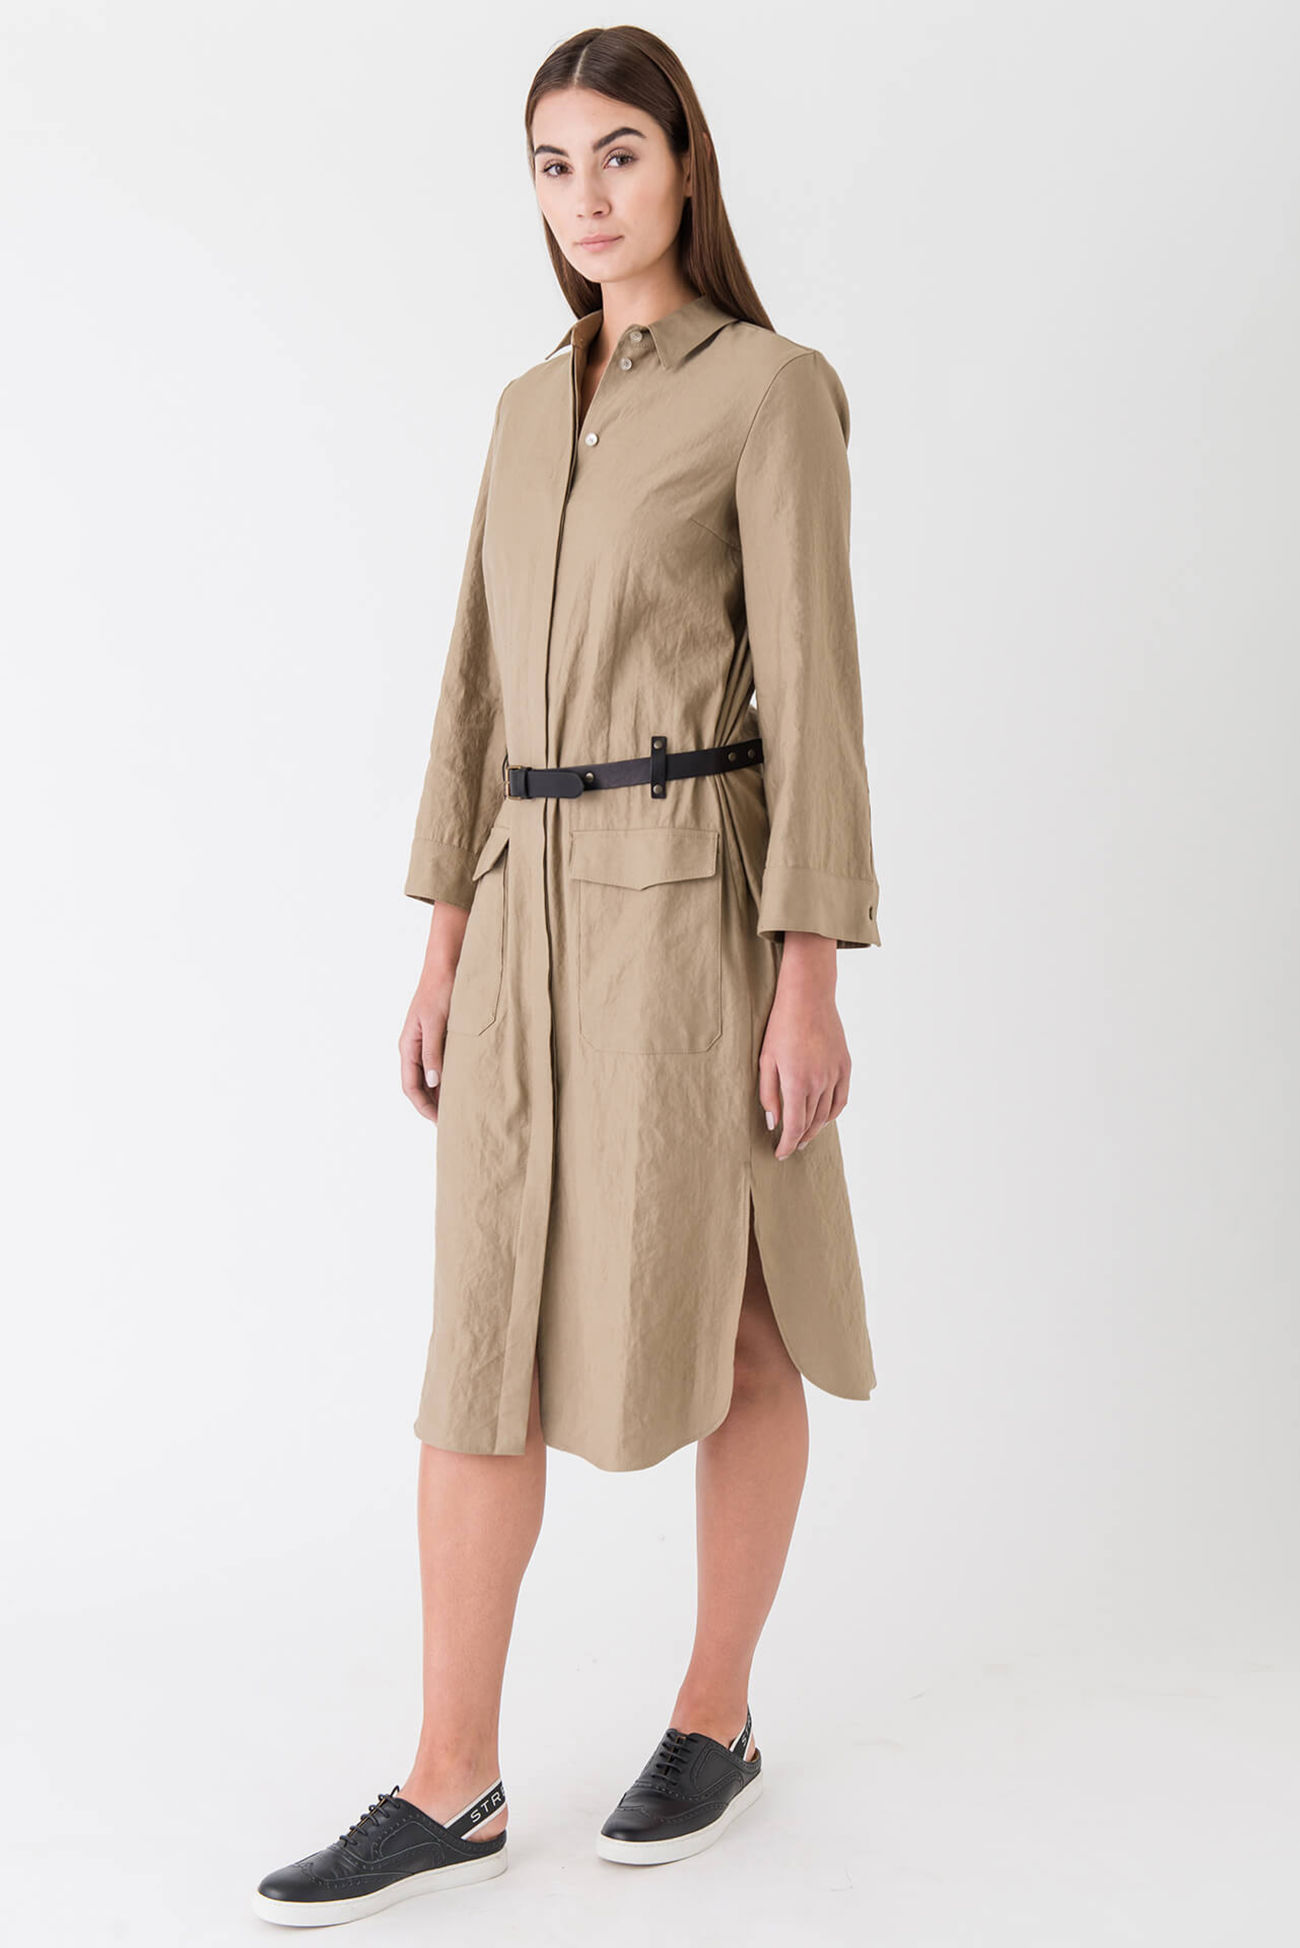 Flamboyant shirtdress made of a linen blend